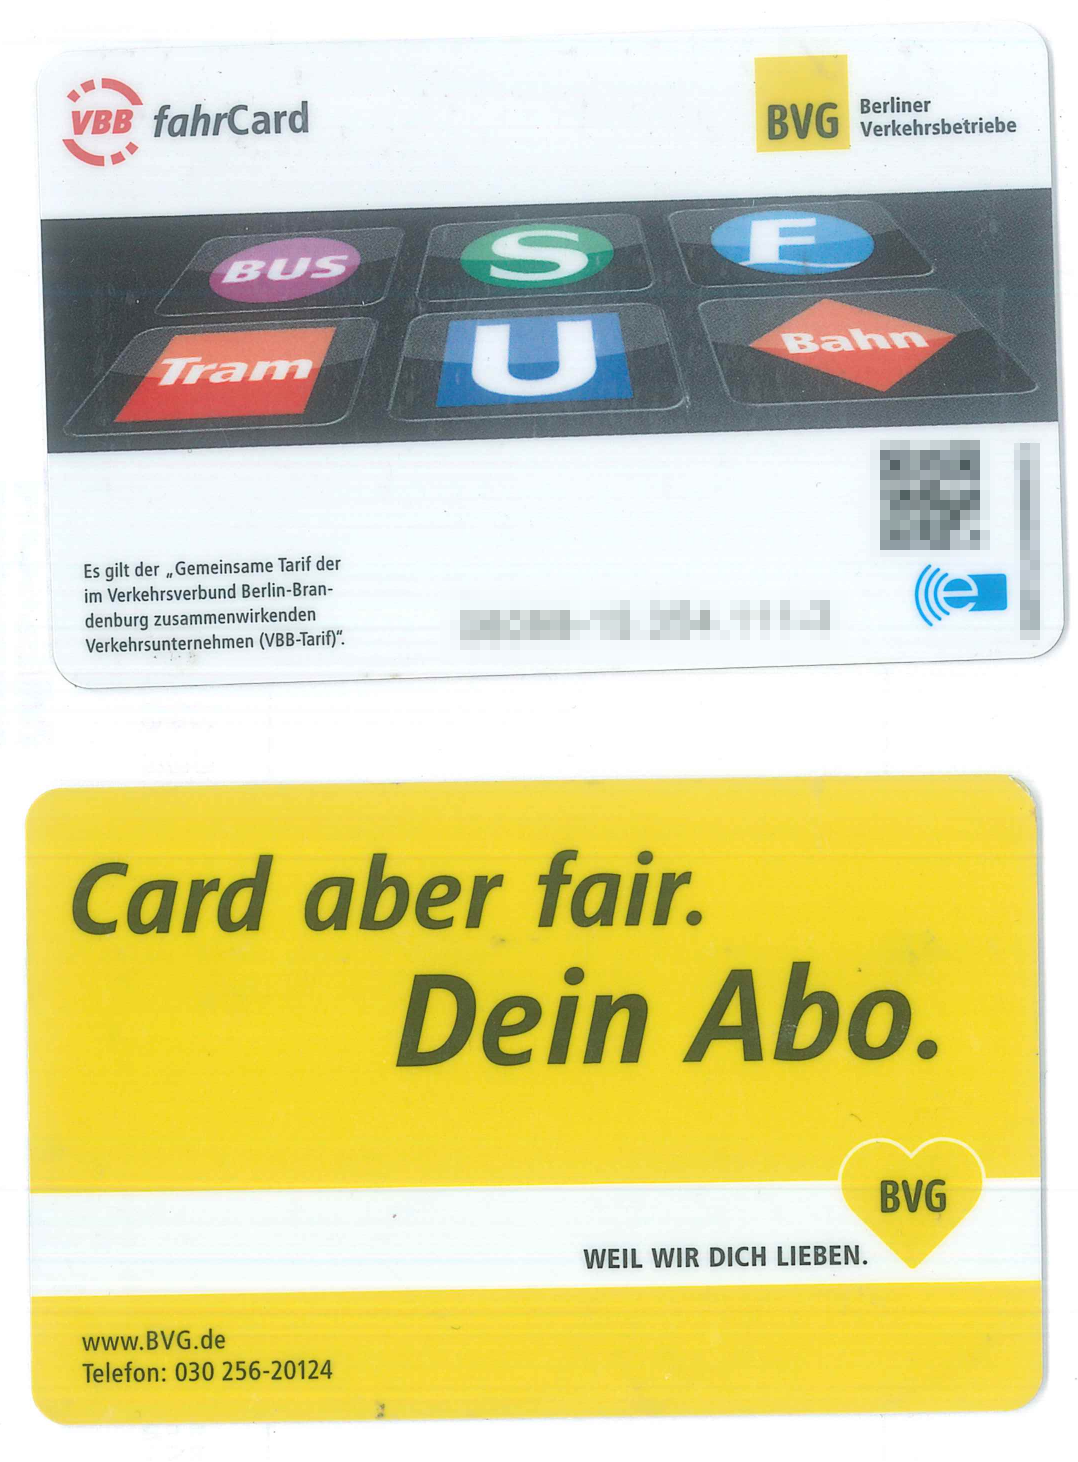 Photo of fahrCard